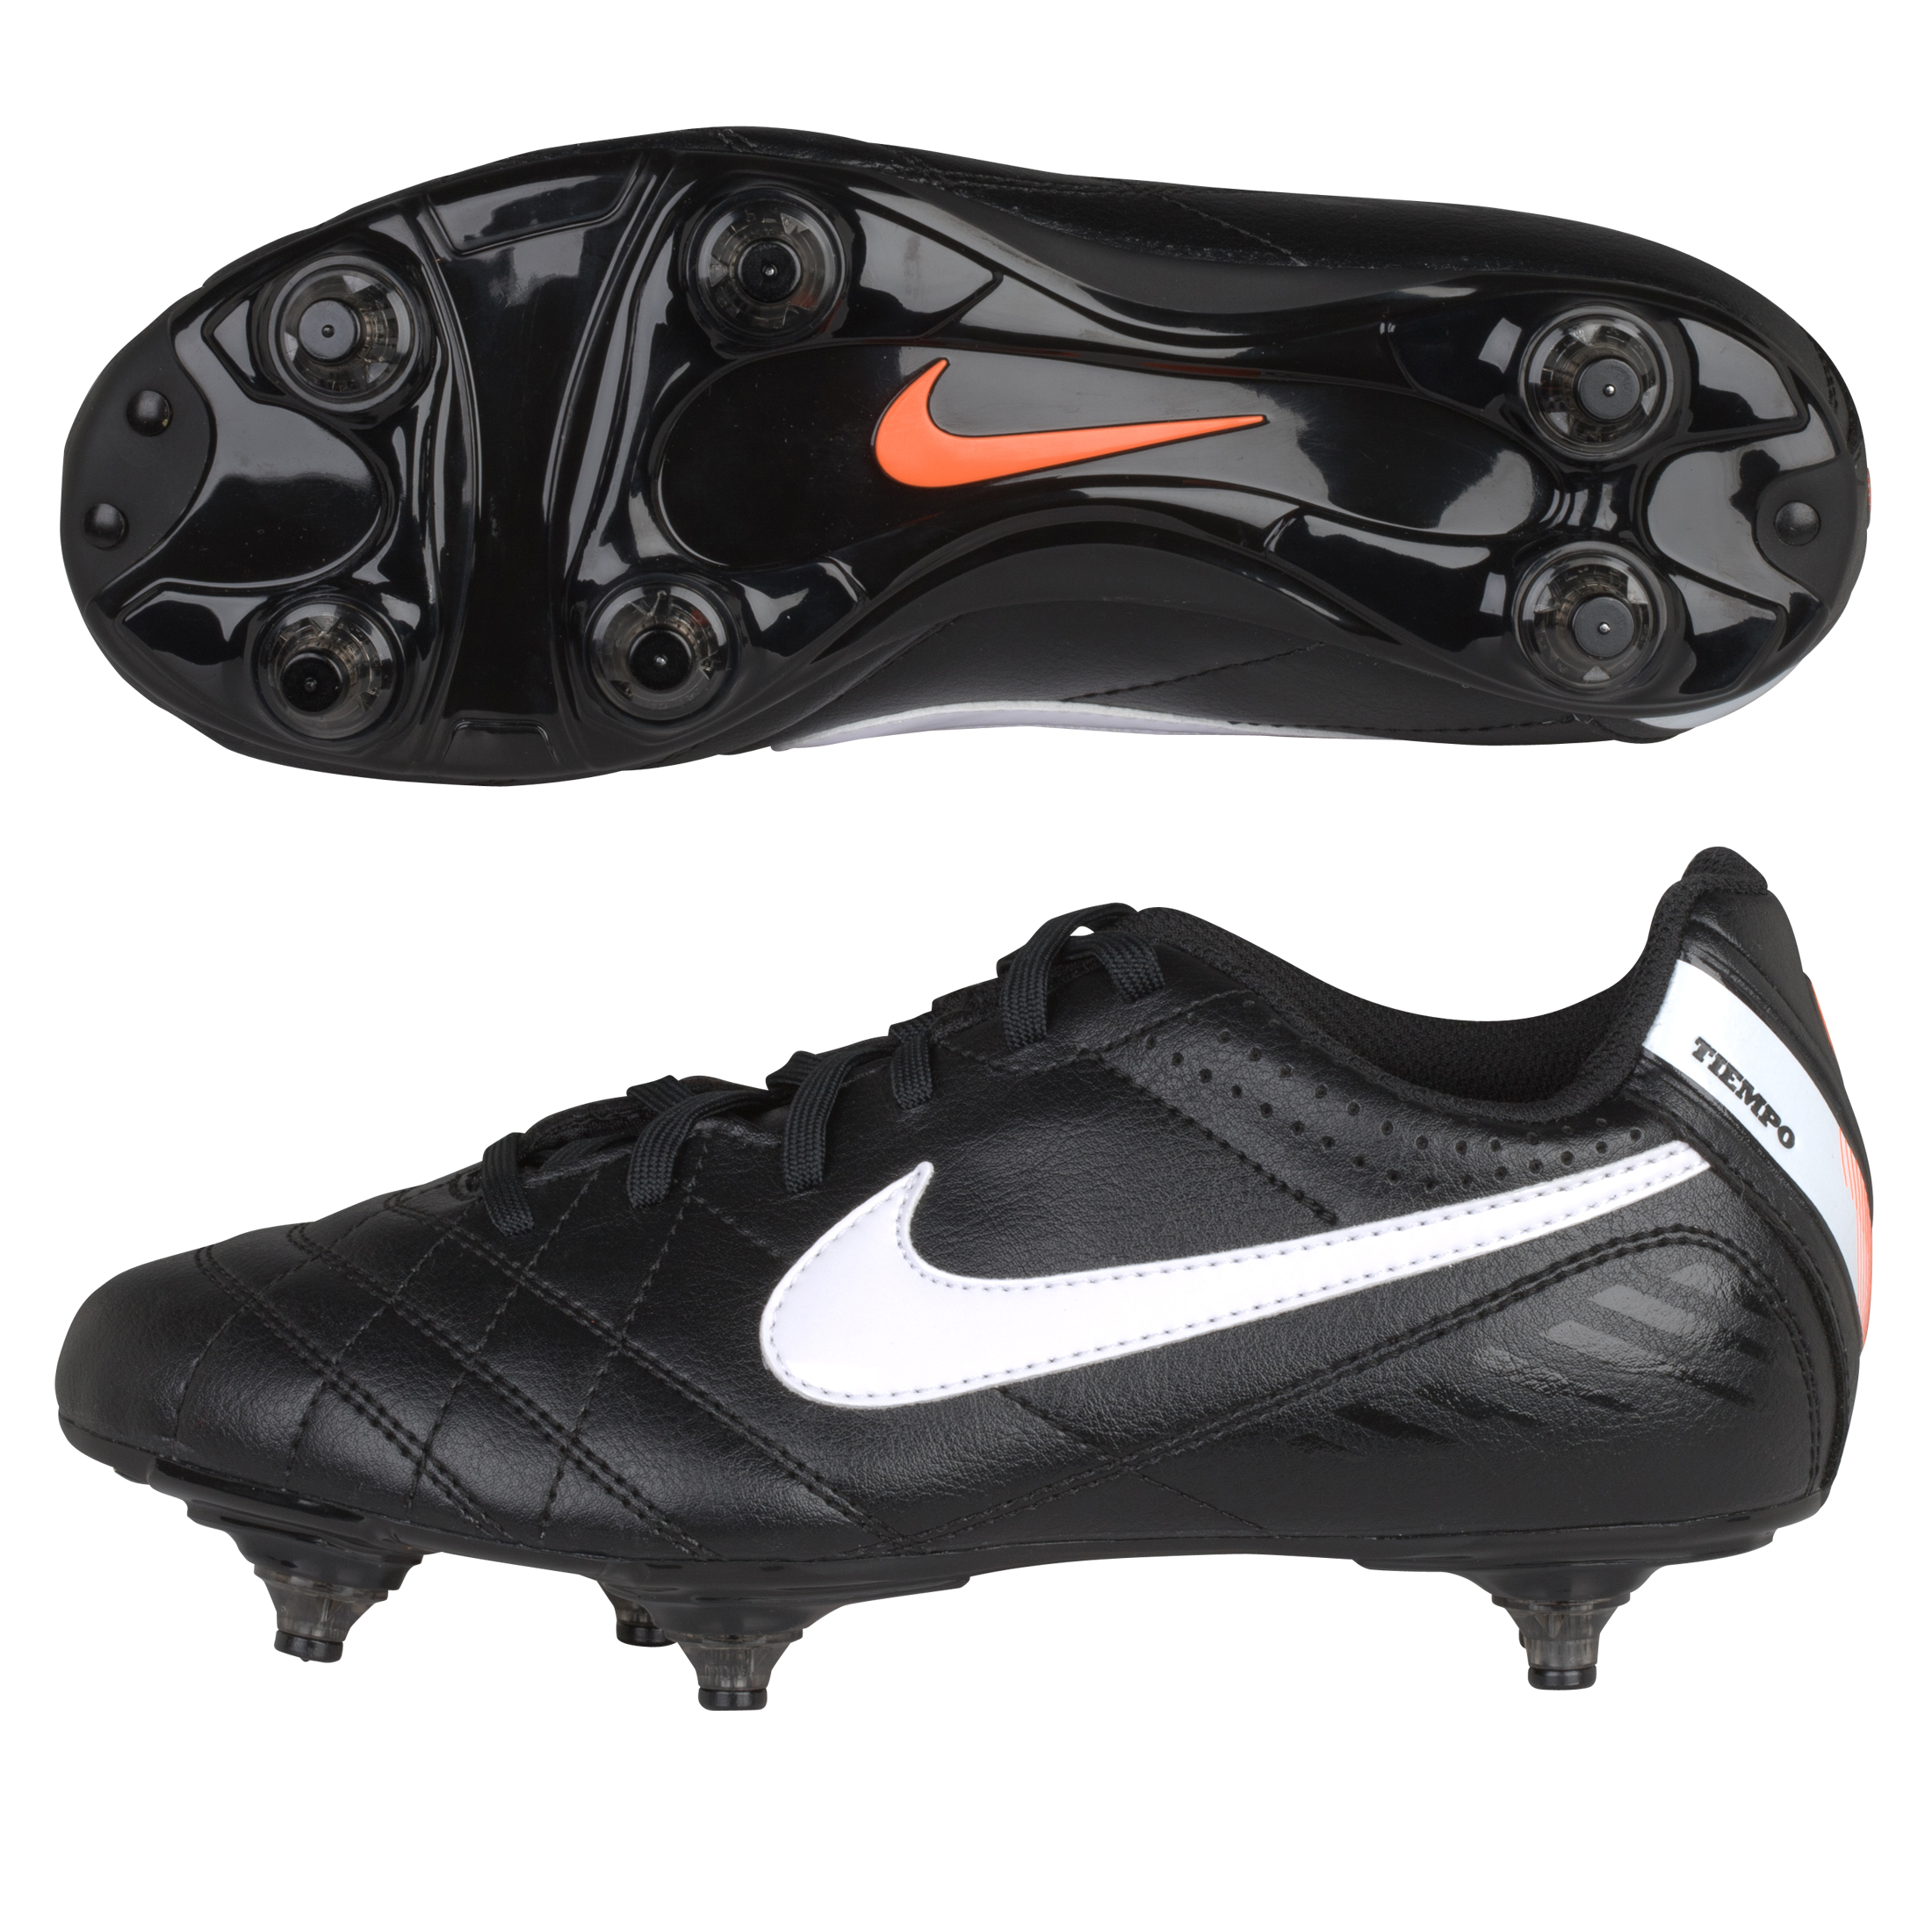 Nike Tiempo Natural IV Soft Ground Football Boots - Black/White/Total Orange - Kids